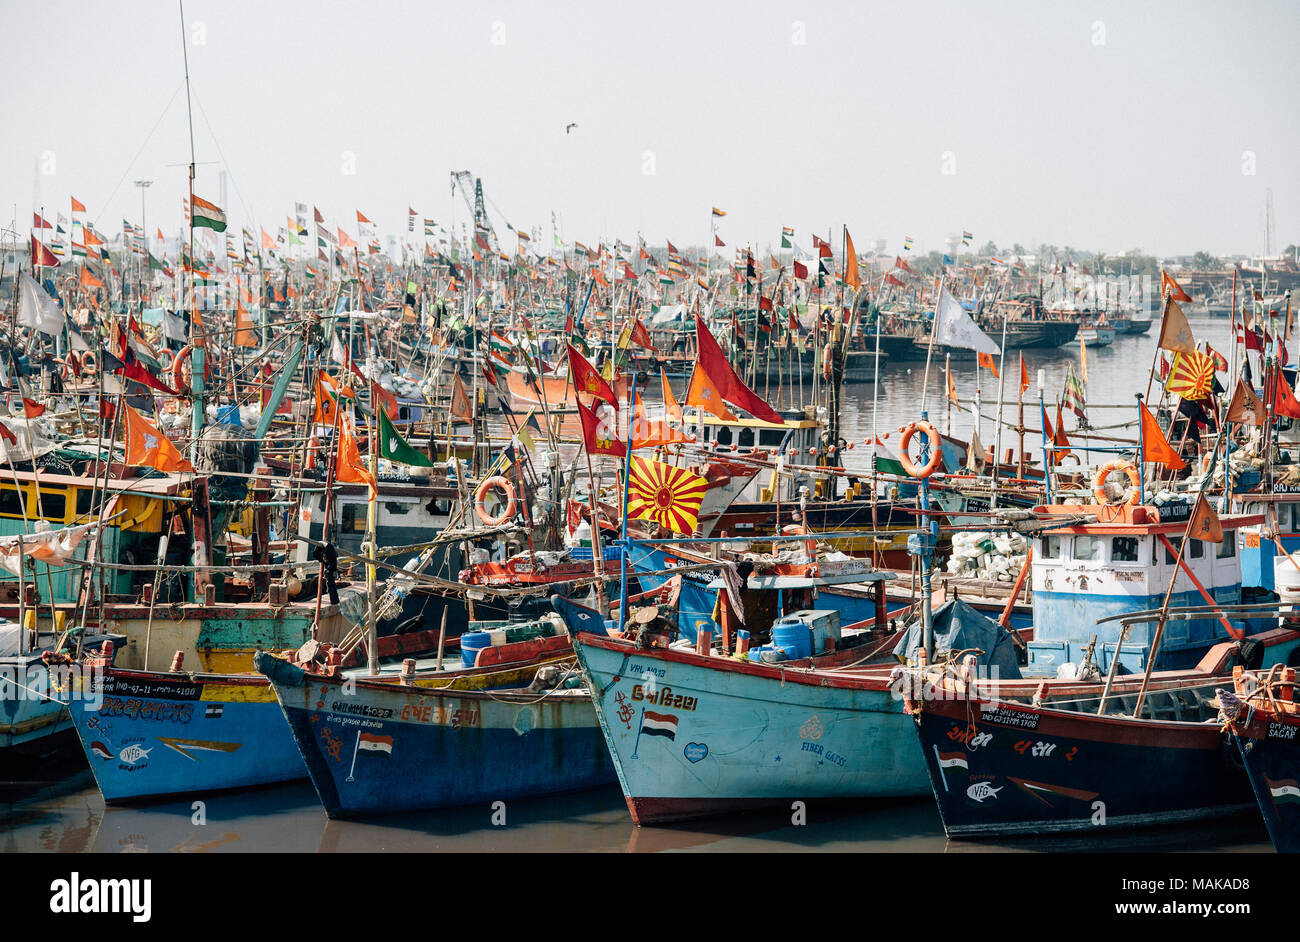 Port with Fisherboats in India - Stock Image